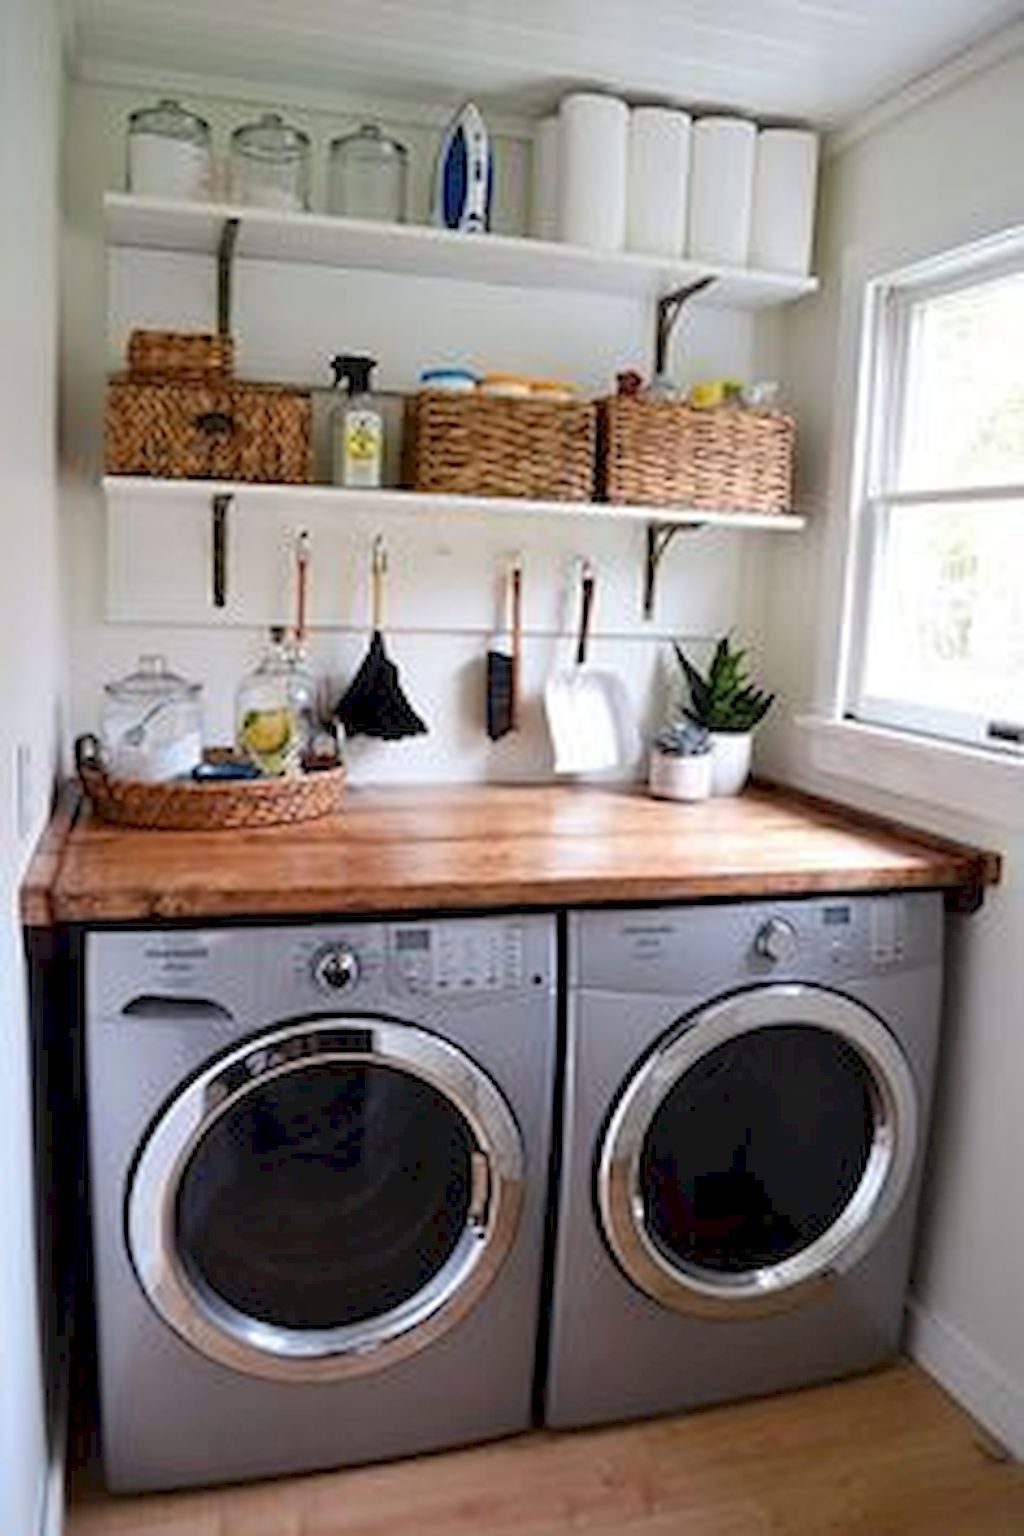 Cool Laundry Rooms 60 First Apartment Laundry Room Decor Ideas Remodel  Room